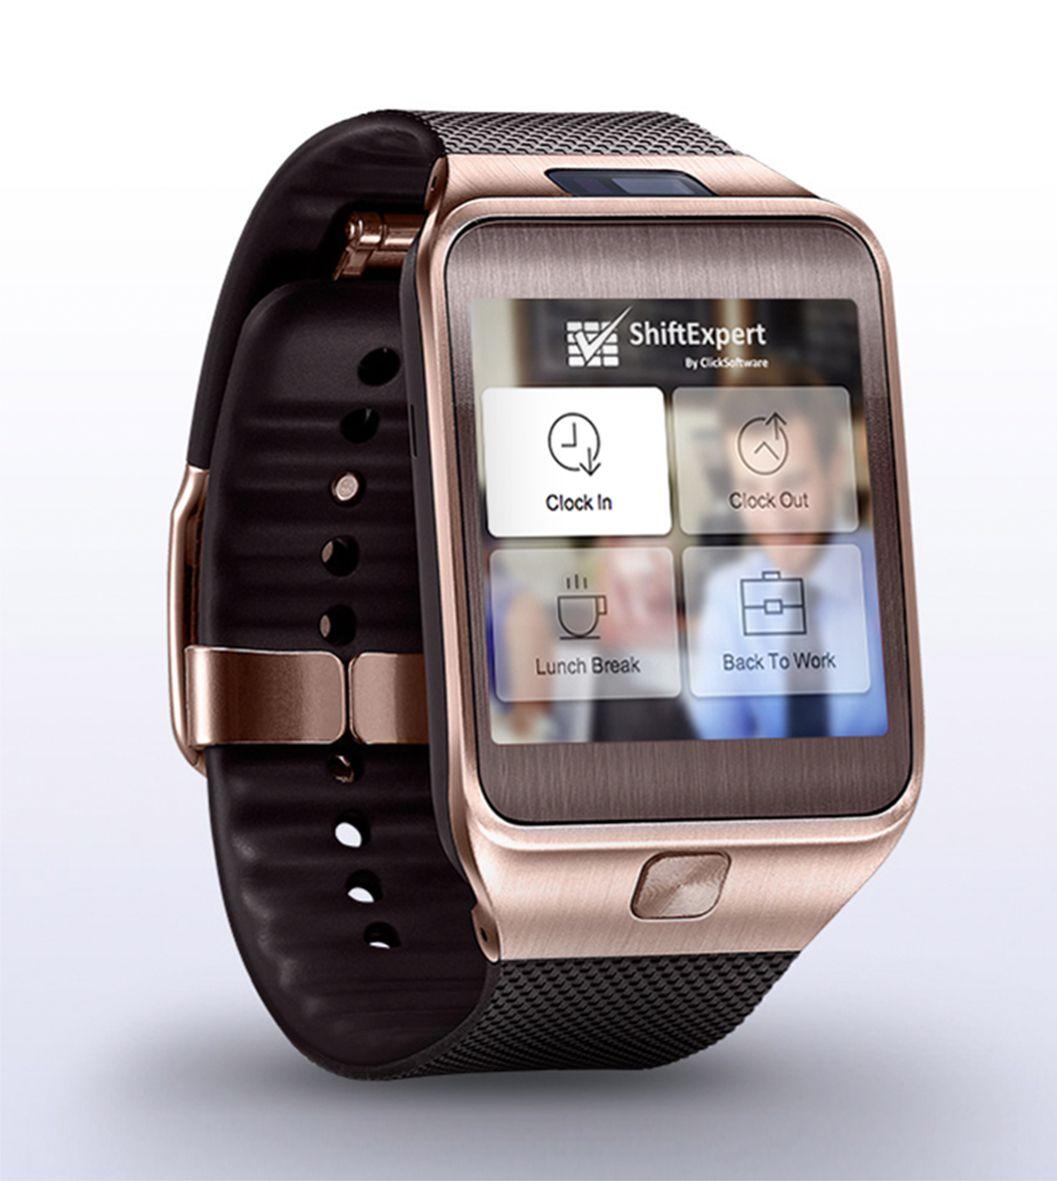 says enterprise wearable apps catching on